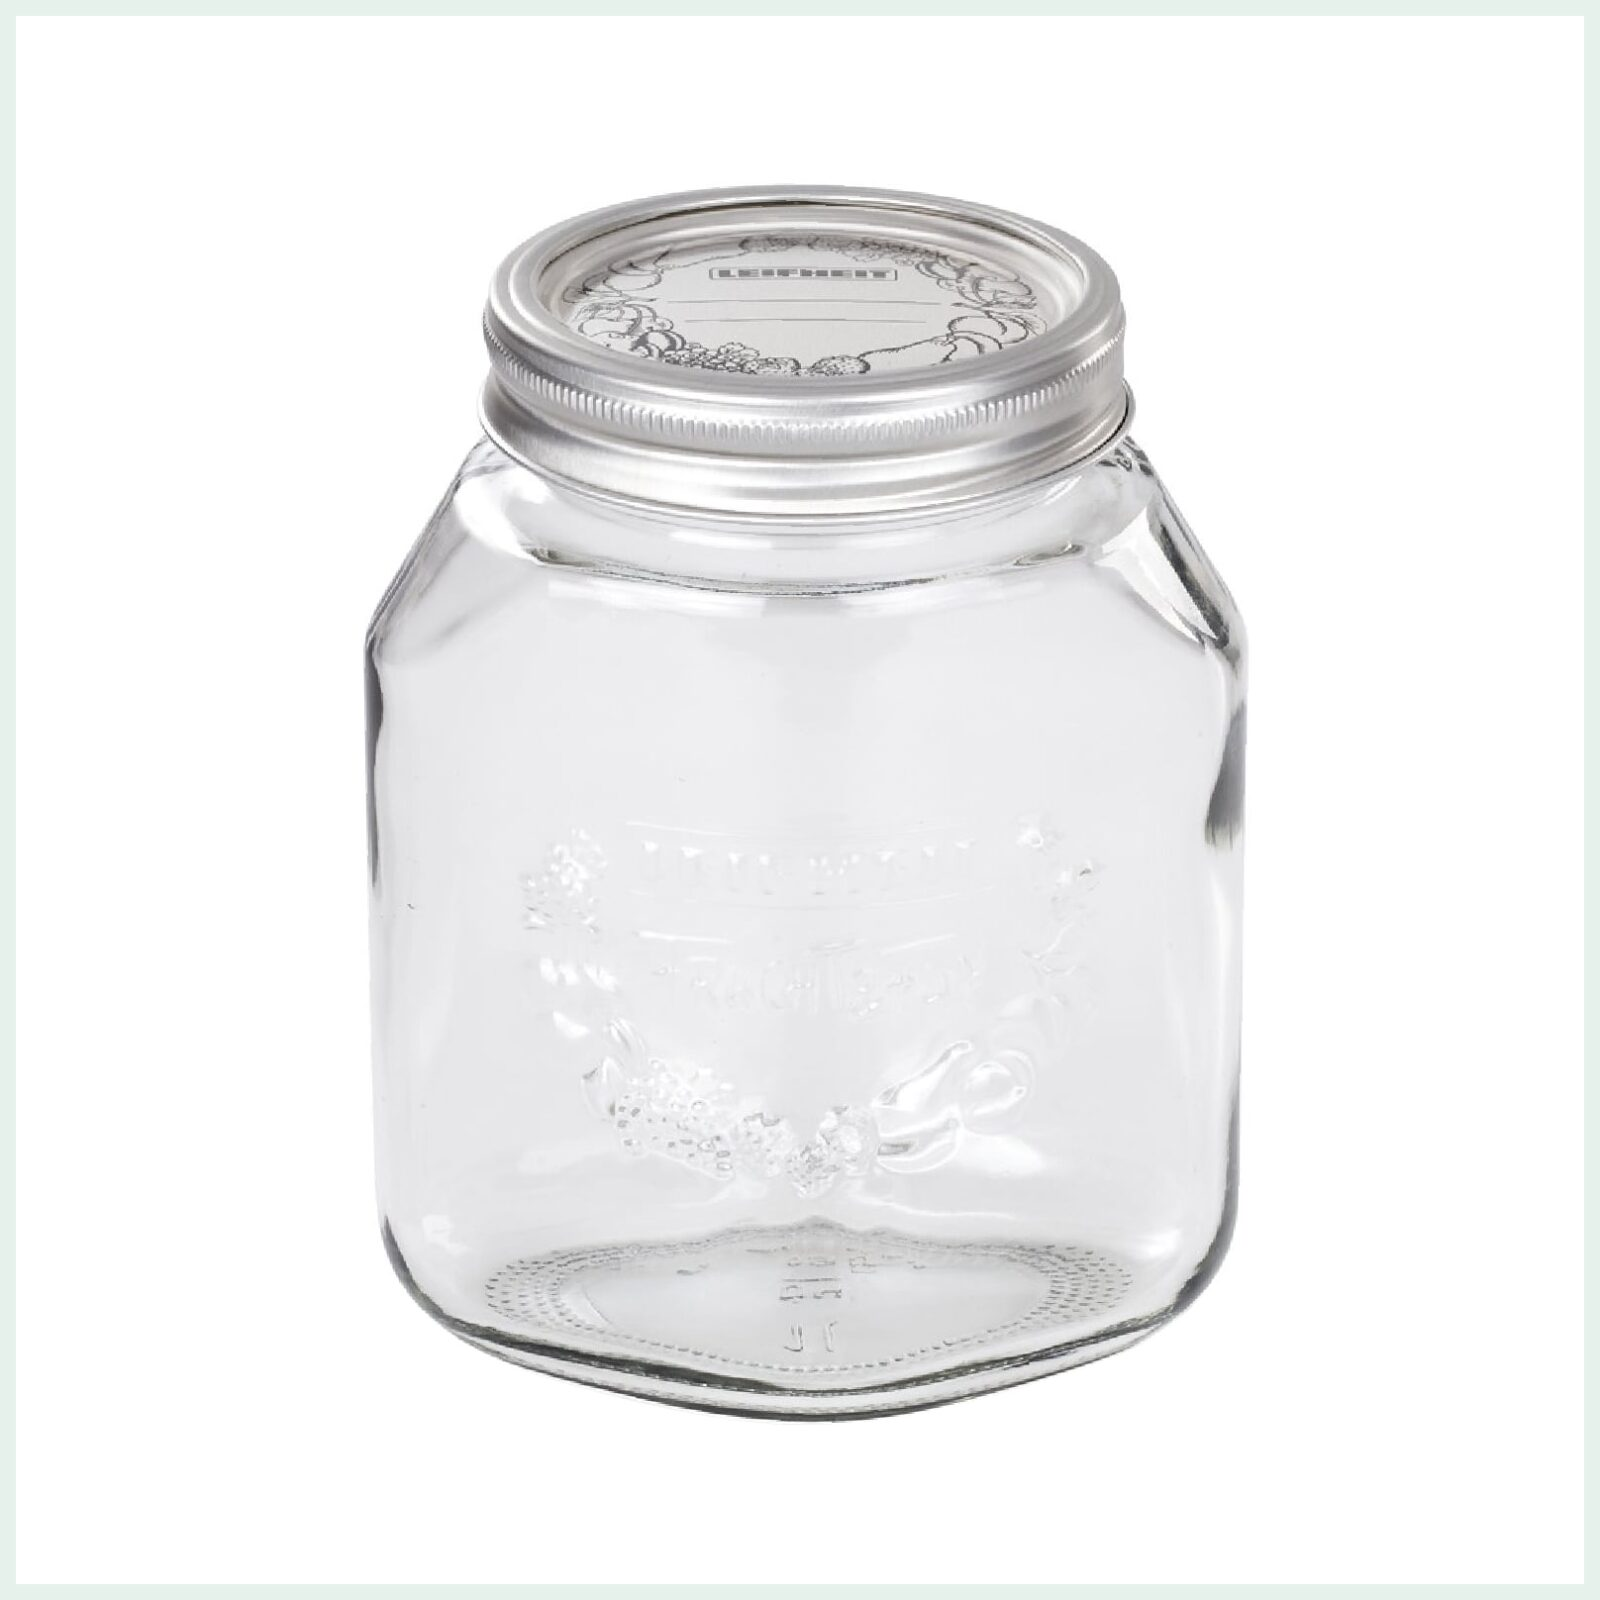 1 Litre Leifheit Wide Mouth Preserve Jar for Jam Making and Canning